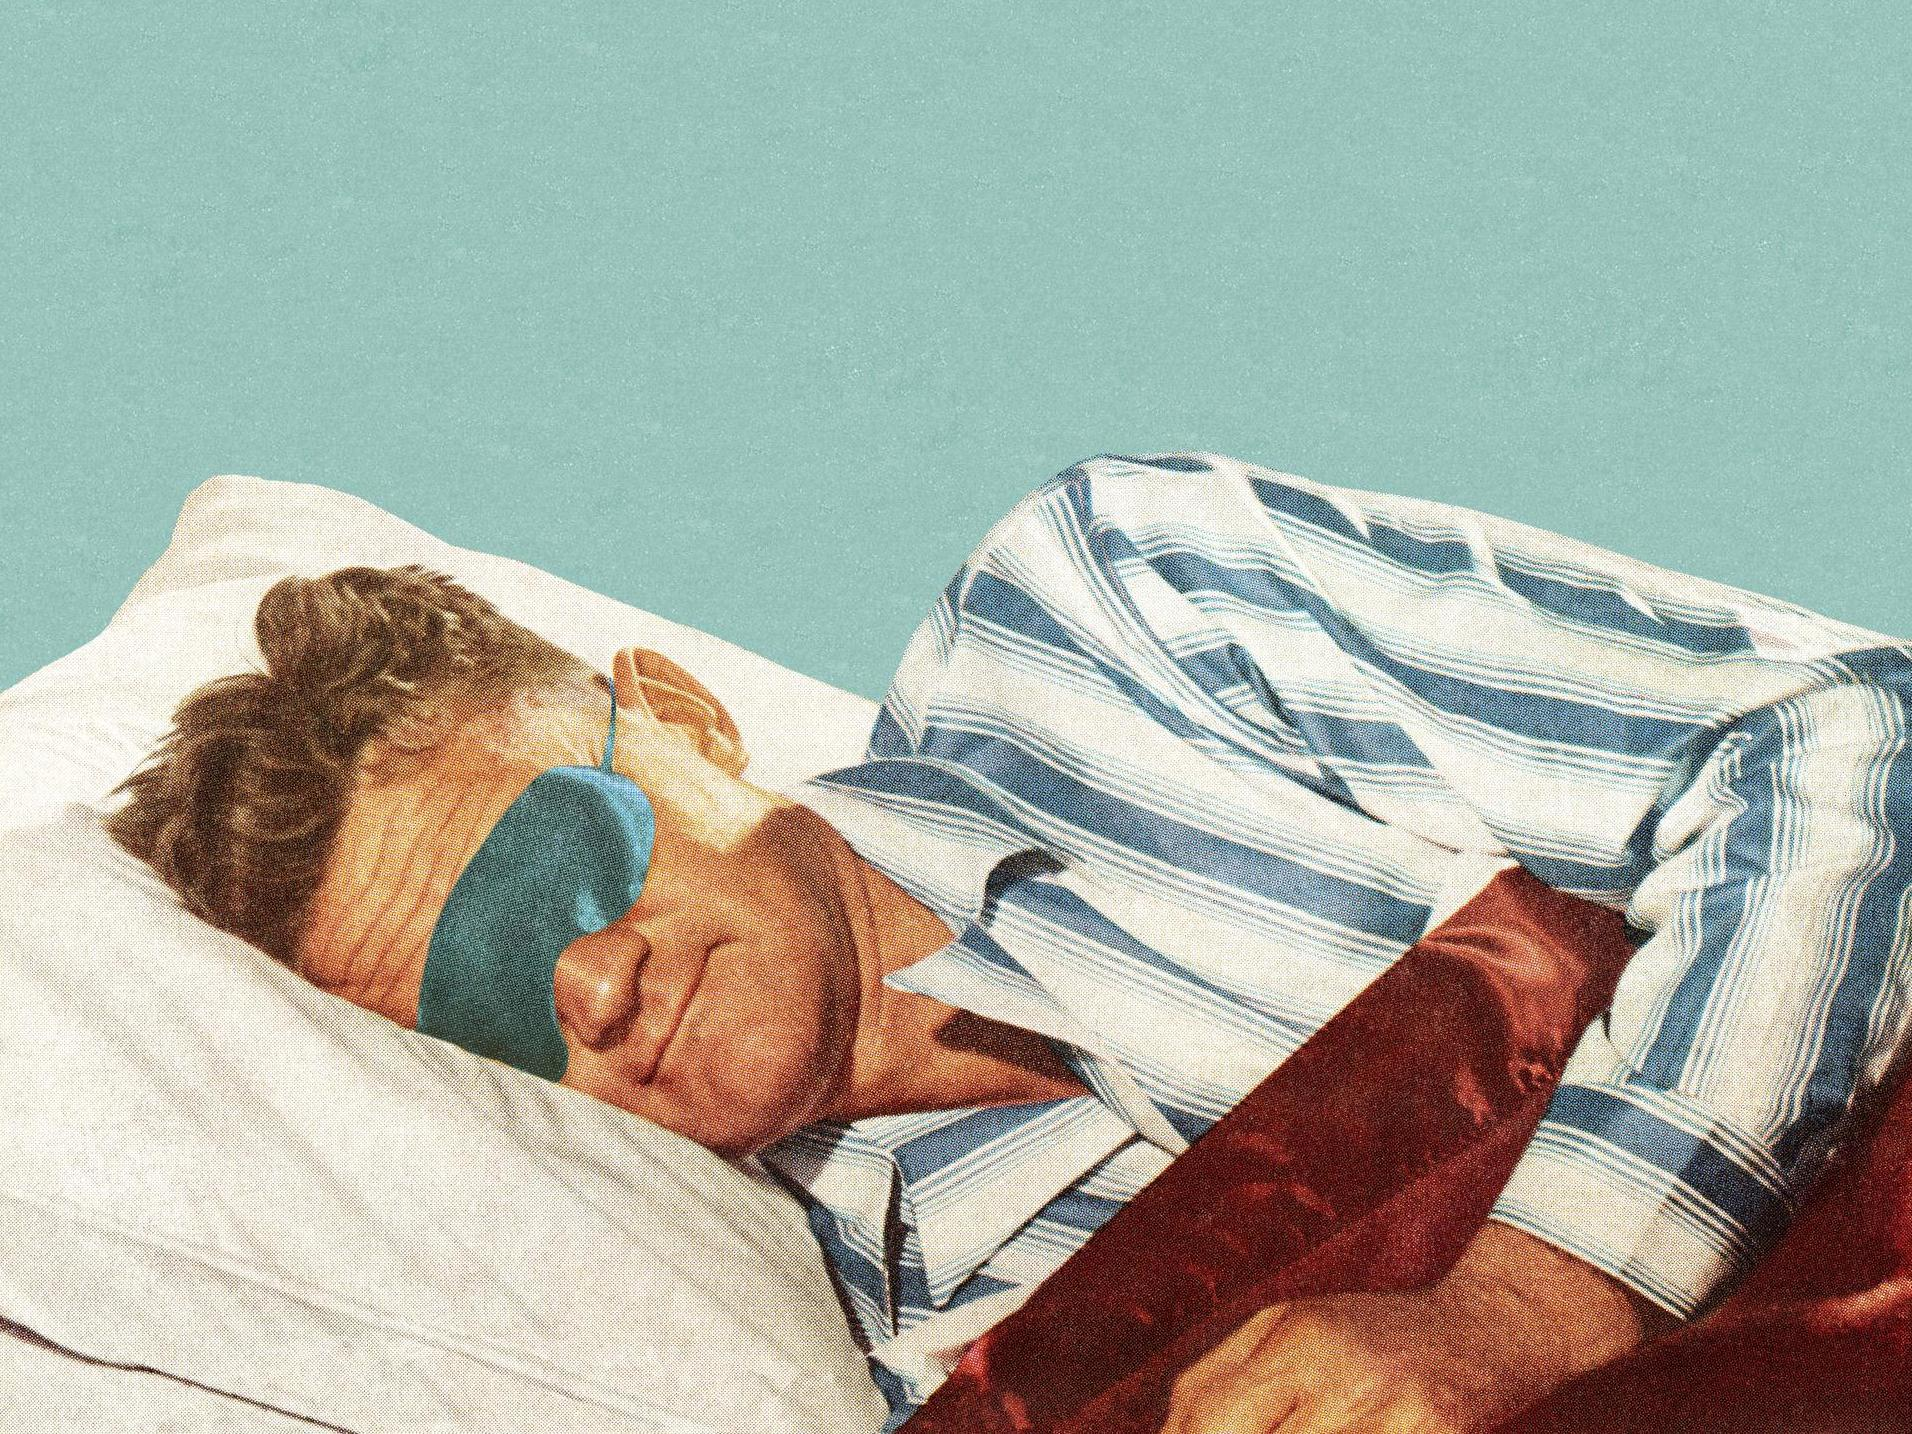 Coronavirus: How to get a better night's sleep if you're feeling anxious during the pandemic thumbnail